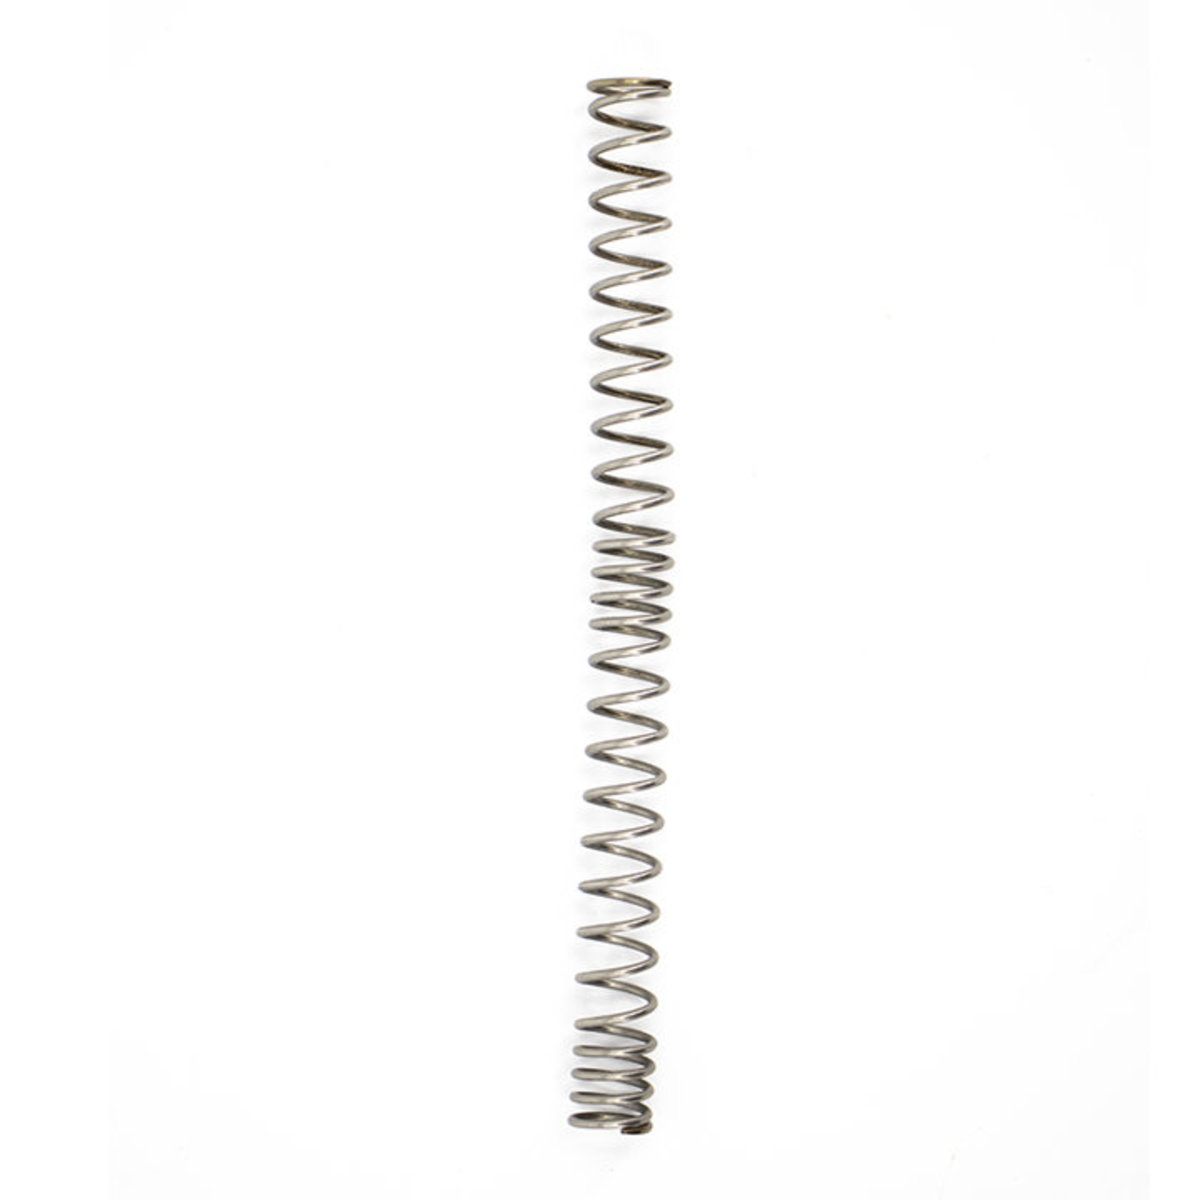 View larger image of Rifle Accessory - Valken Battle Machine Main Spring M90